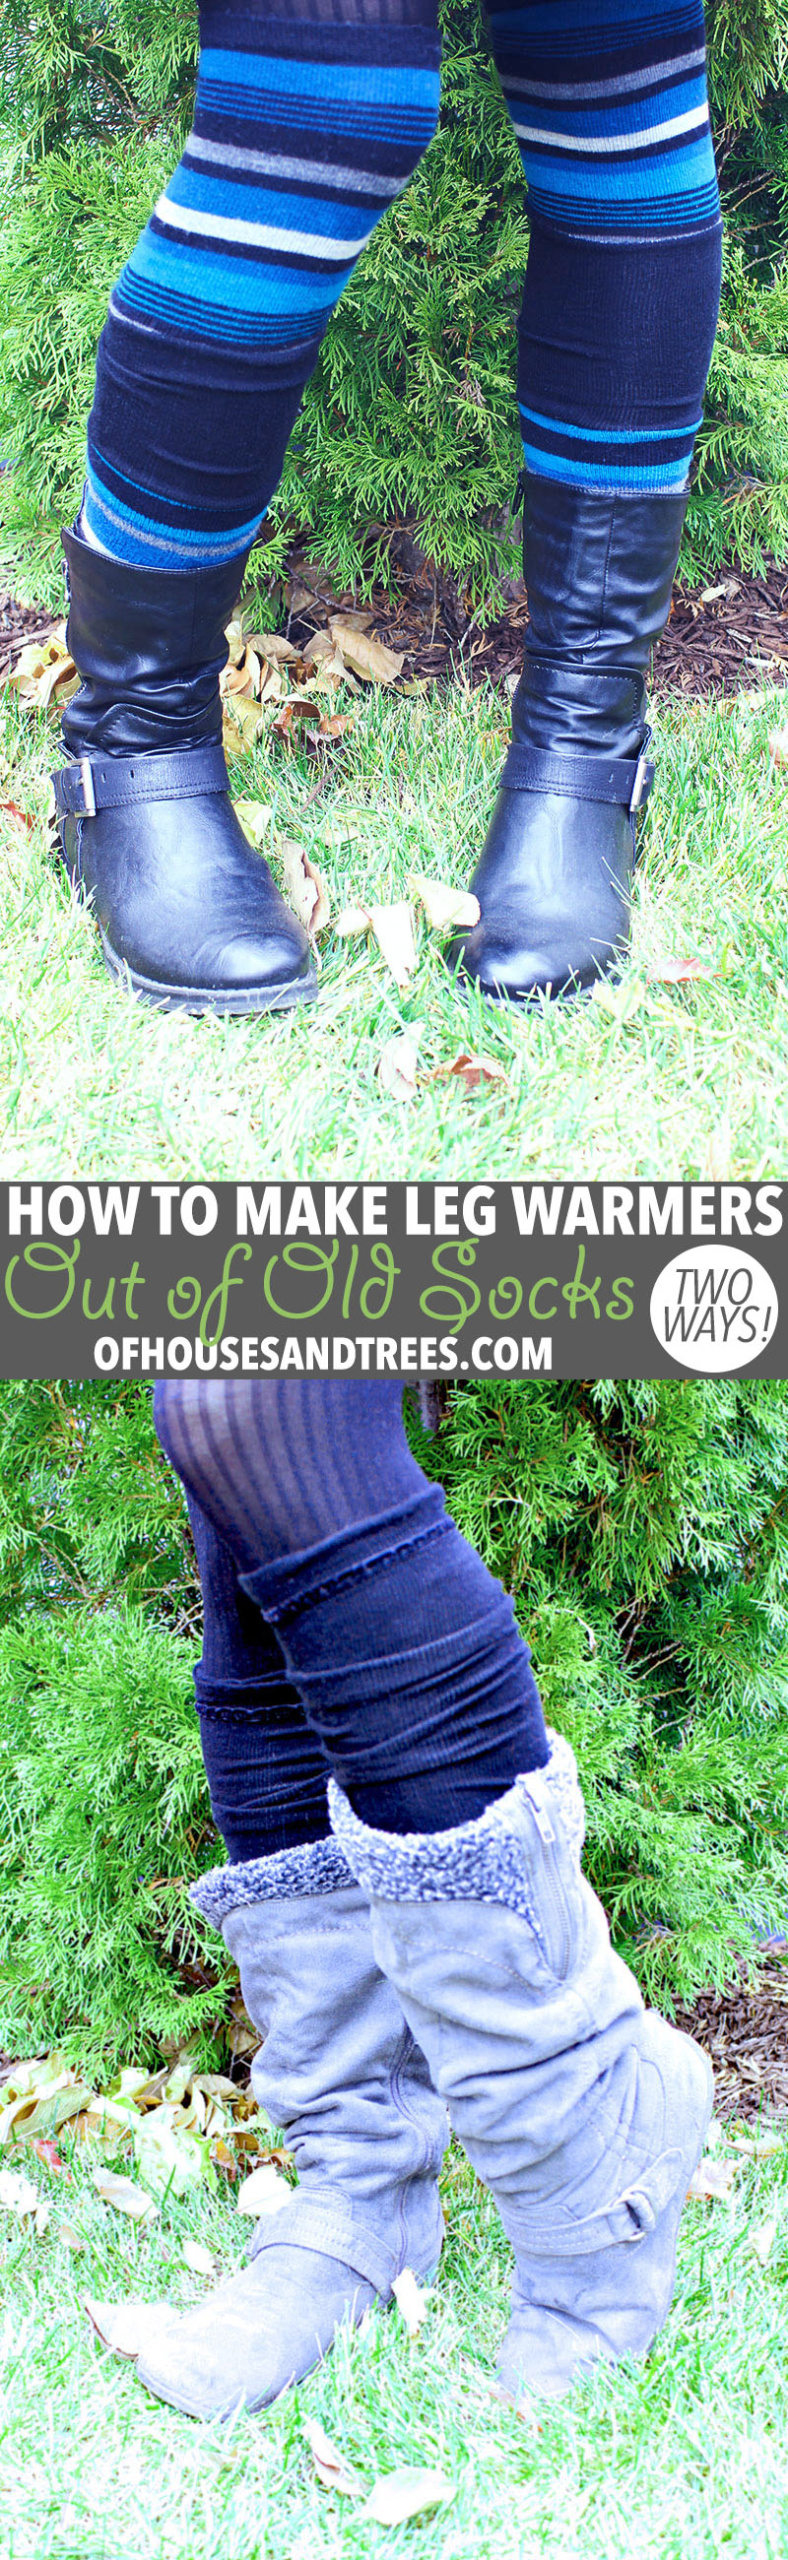 DIY Leg Warmers   Leg warmers aren't just for dancers. They keep the legs toasty and also look kind of cute, no? Here are two ways to make DIY leg warmers out of old socks!DIY Leg Warmers   Leg warmers aren't just for dancers. They keep the legs toasty and also look kind of cute, no? Here are two ways to make DIY leg warmers out of old socks!